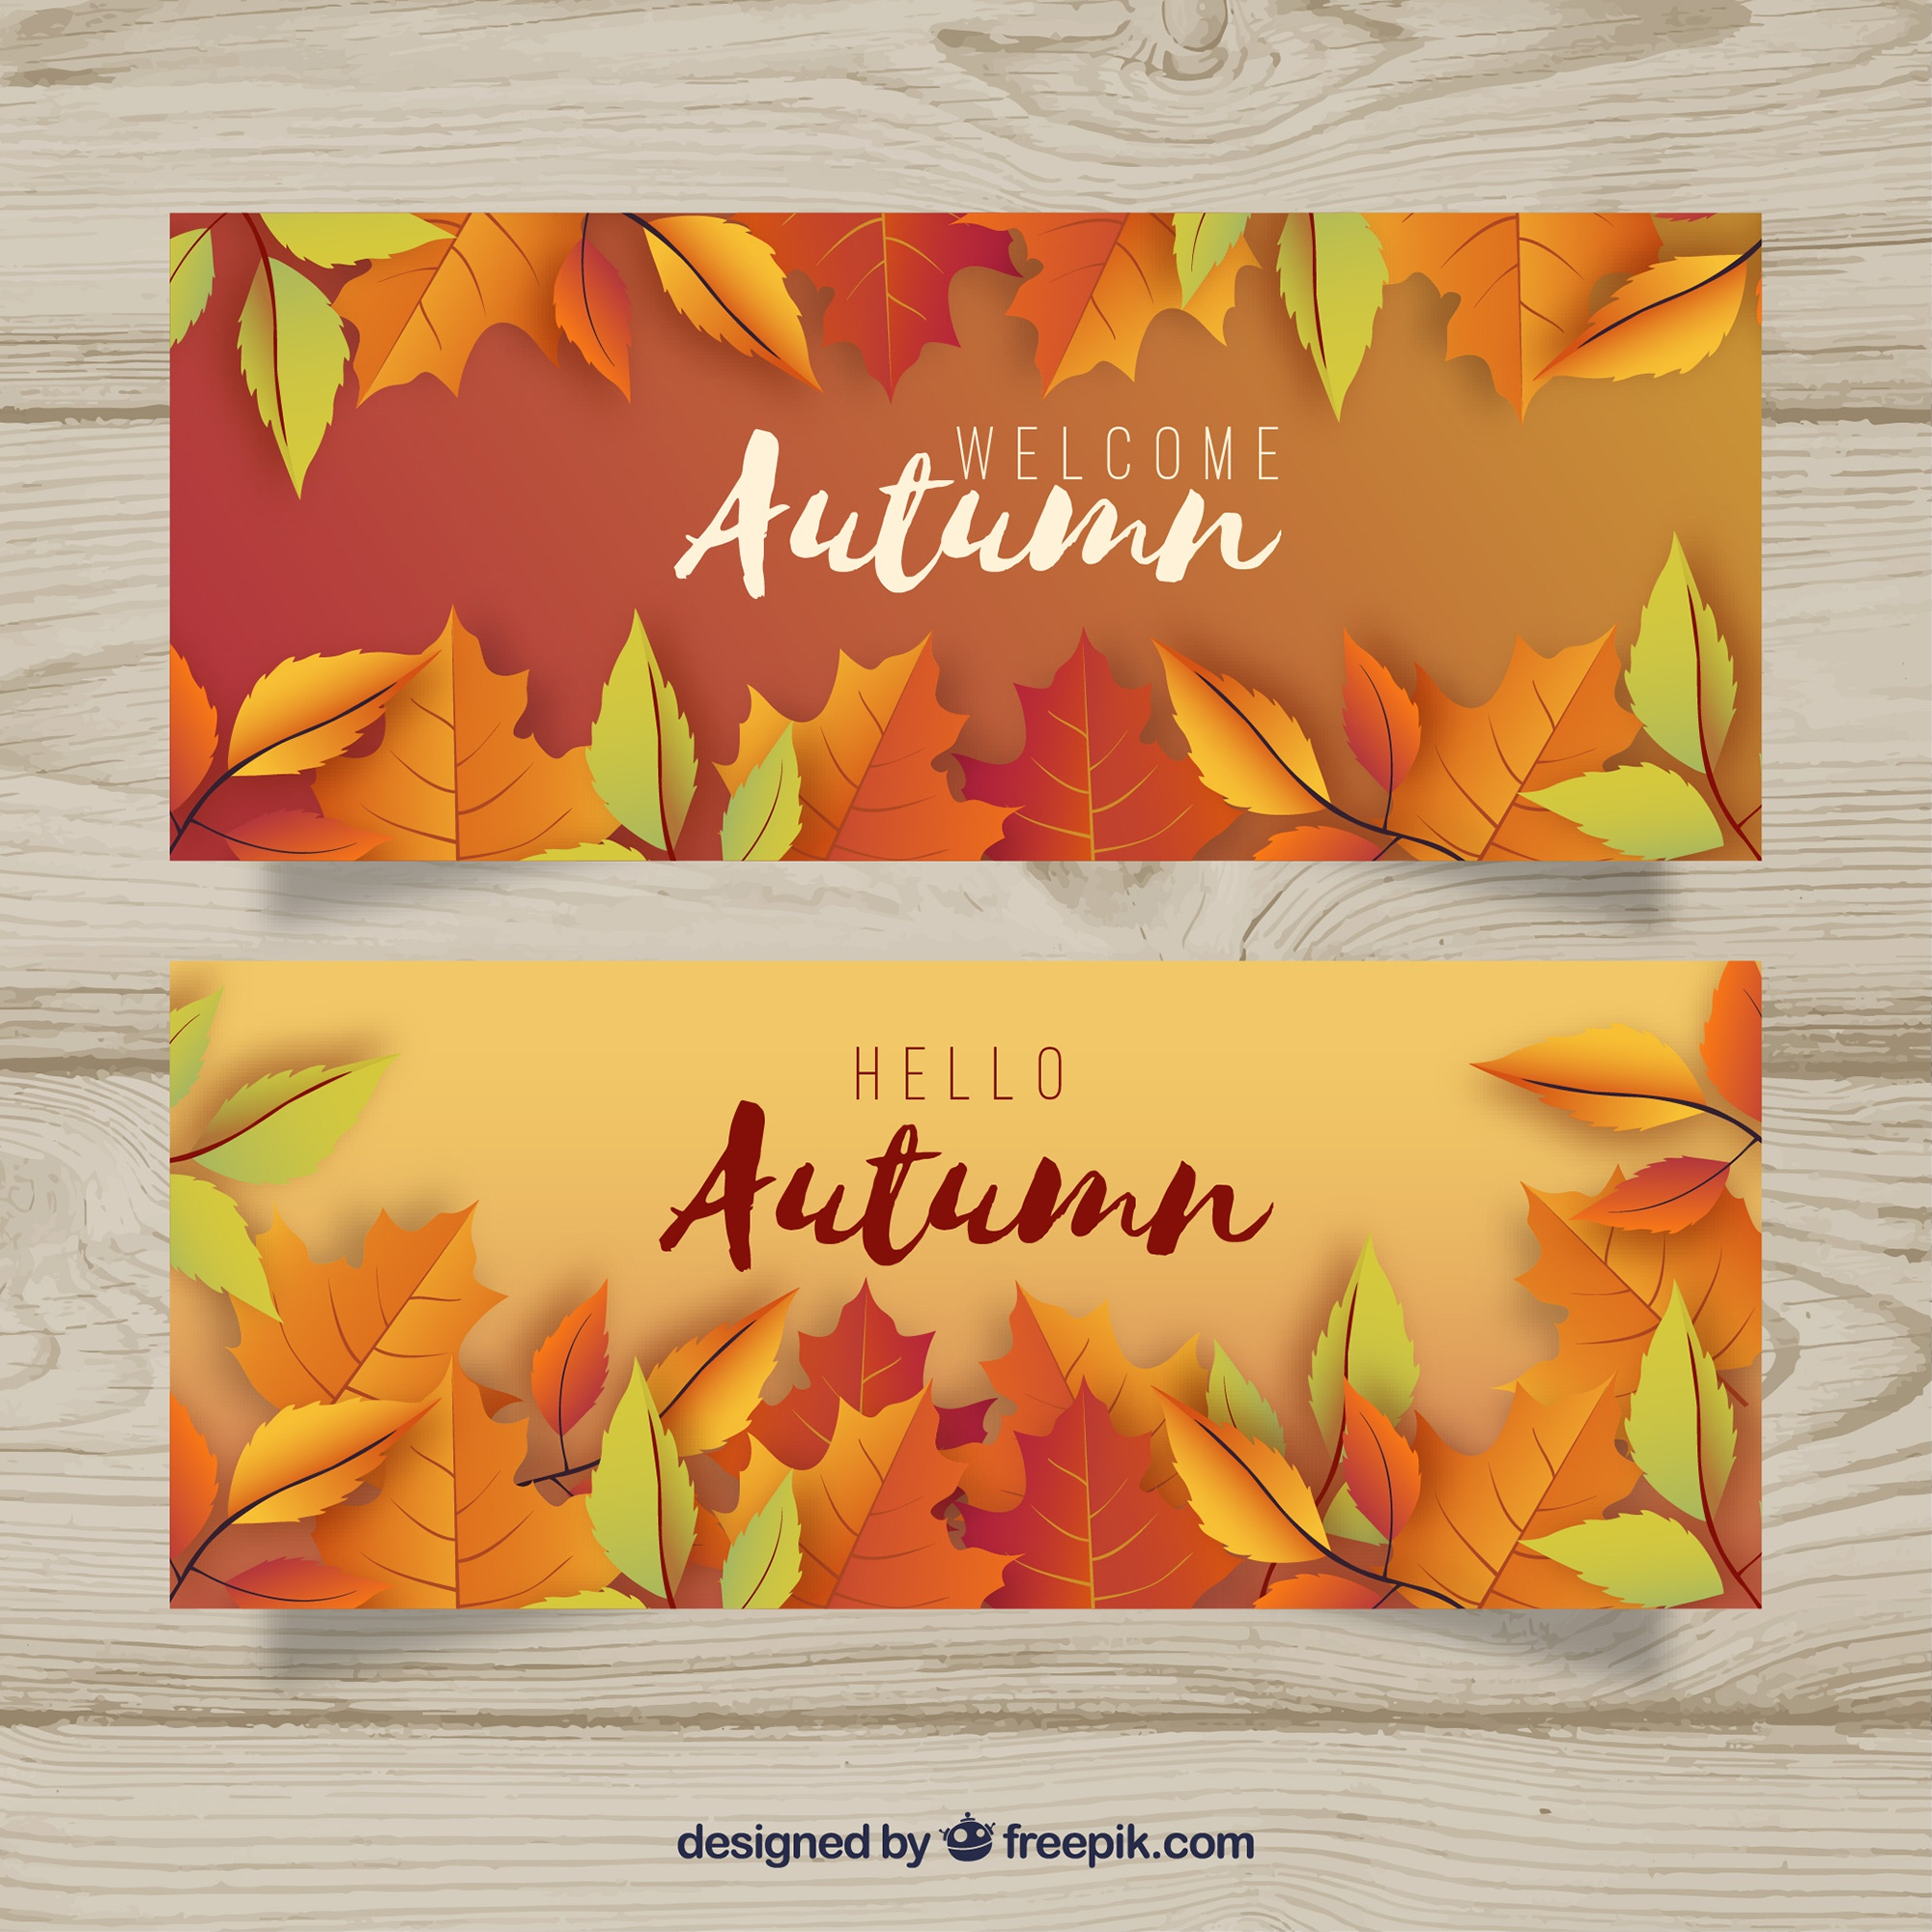 Autumn banners with colorful leaves